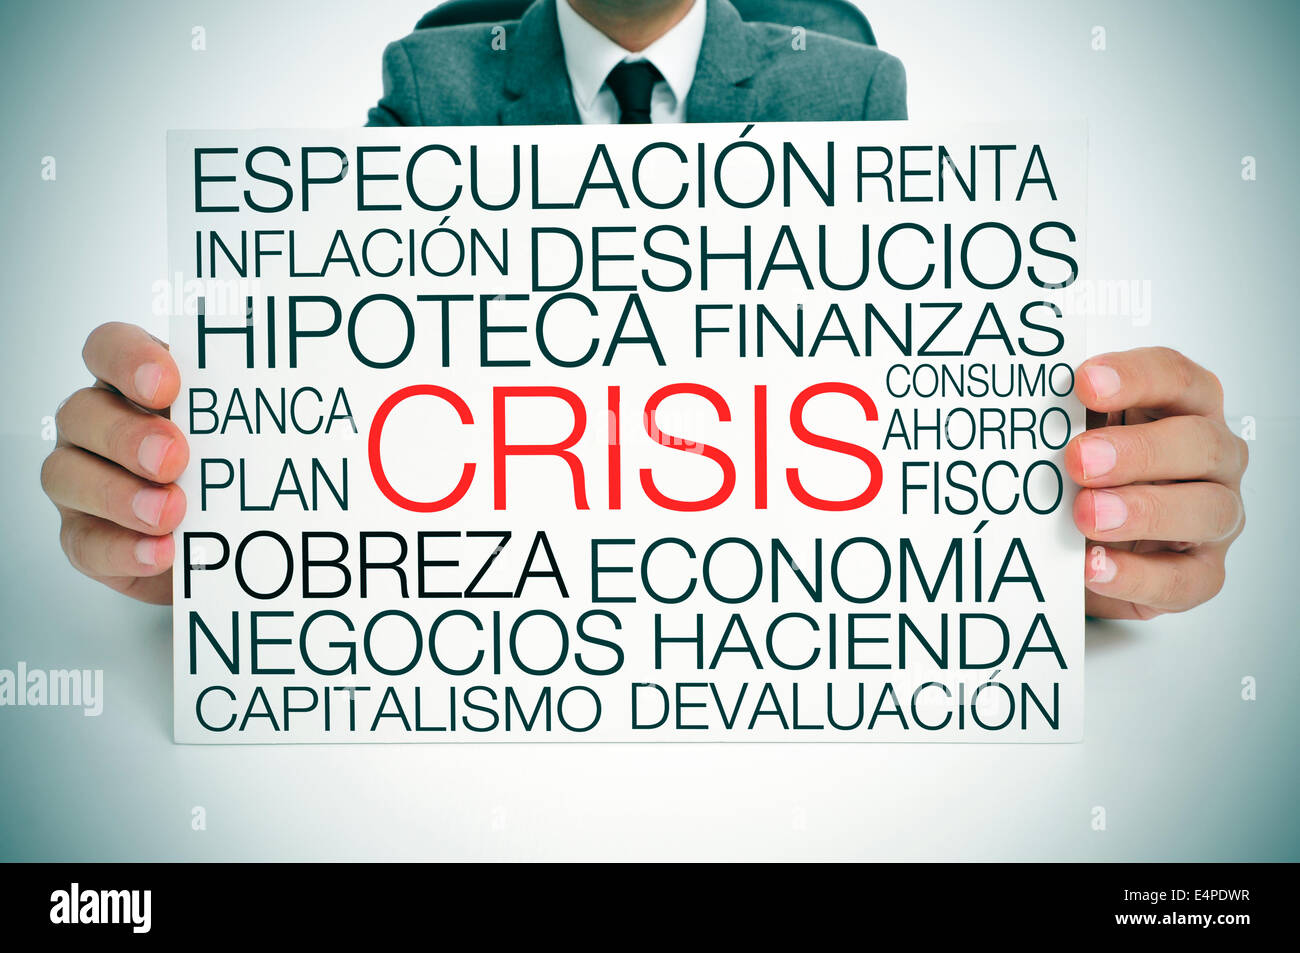 a businessman holding a signboard with different terms in spanish related to the economic crisis concept - Stock Image